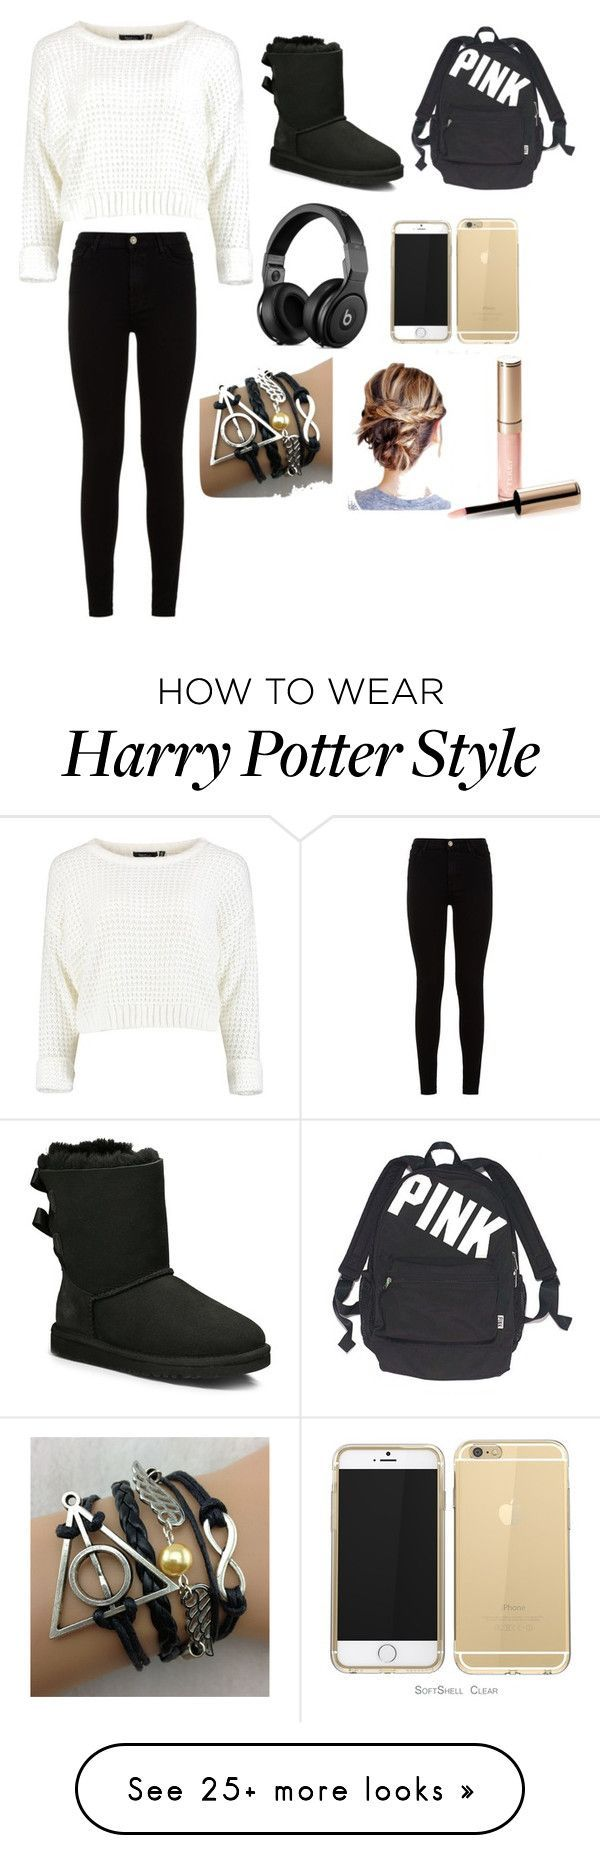 """Untitled #25"" by harrylikescupcakes on Polyvore featuring 7 For All Mankind, UGG Australia, Victoria's Secret and By Terry"